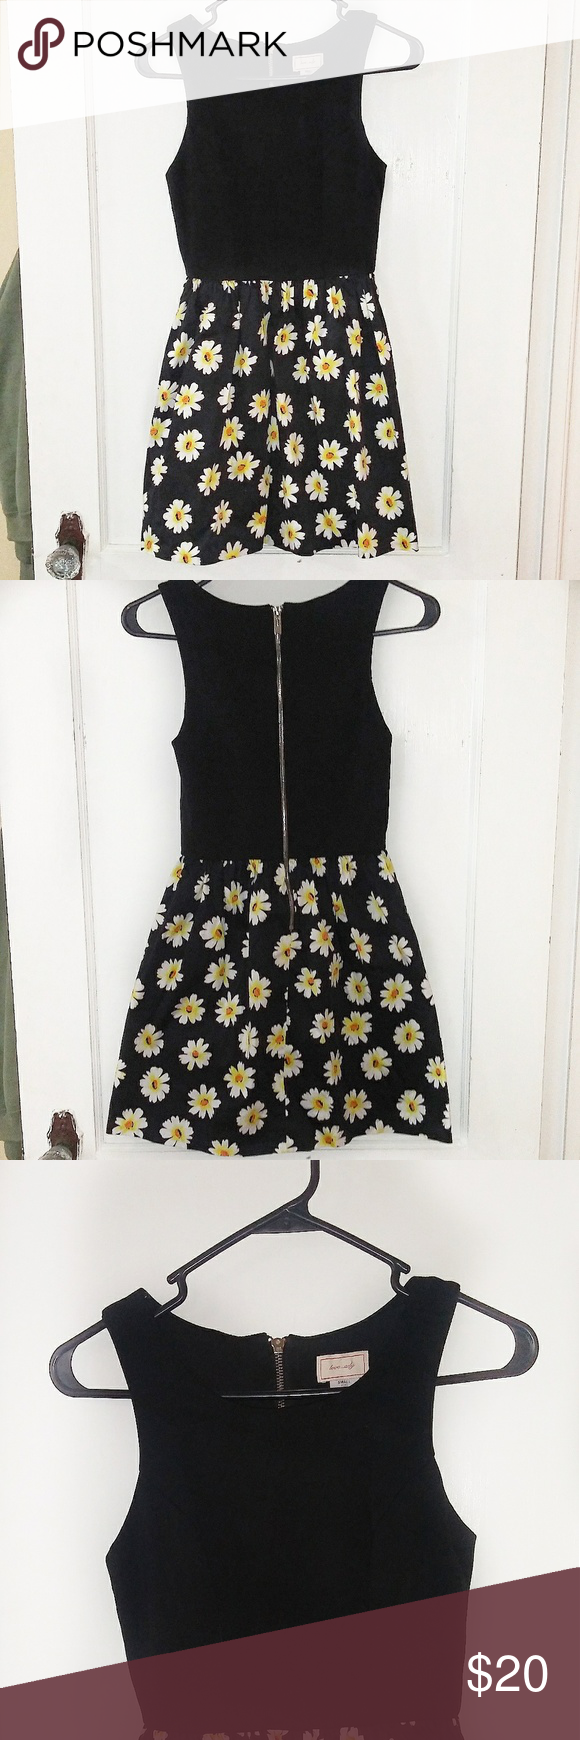 Nordstrom Love Ady Fit Flare Sunflower Dress Make Me An